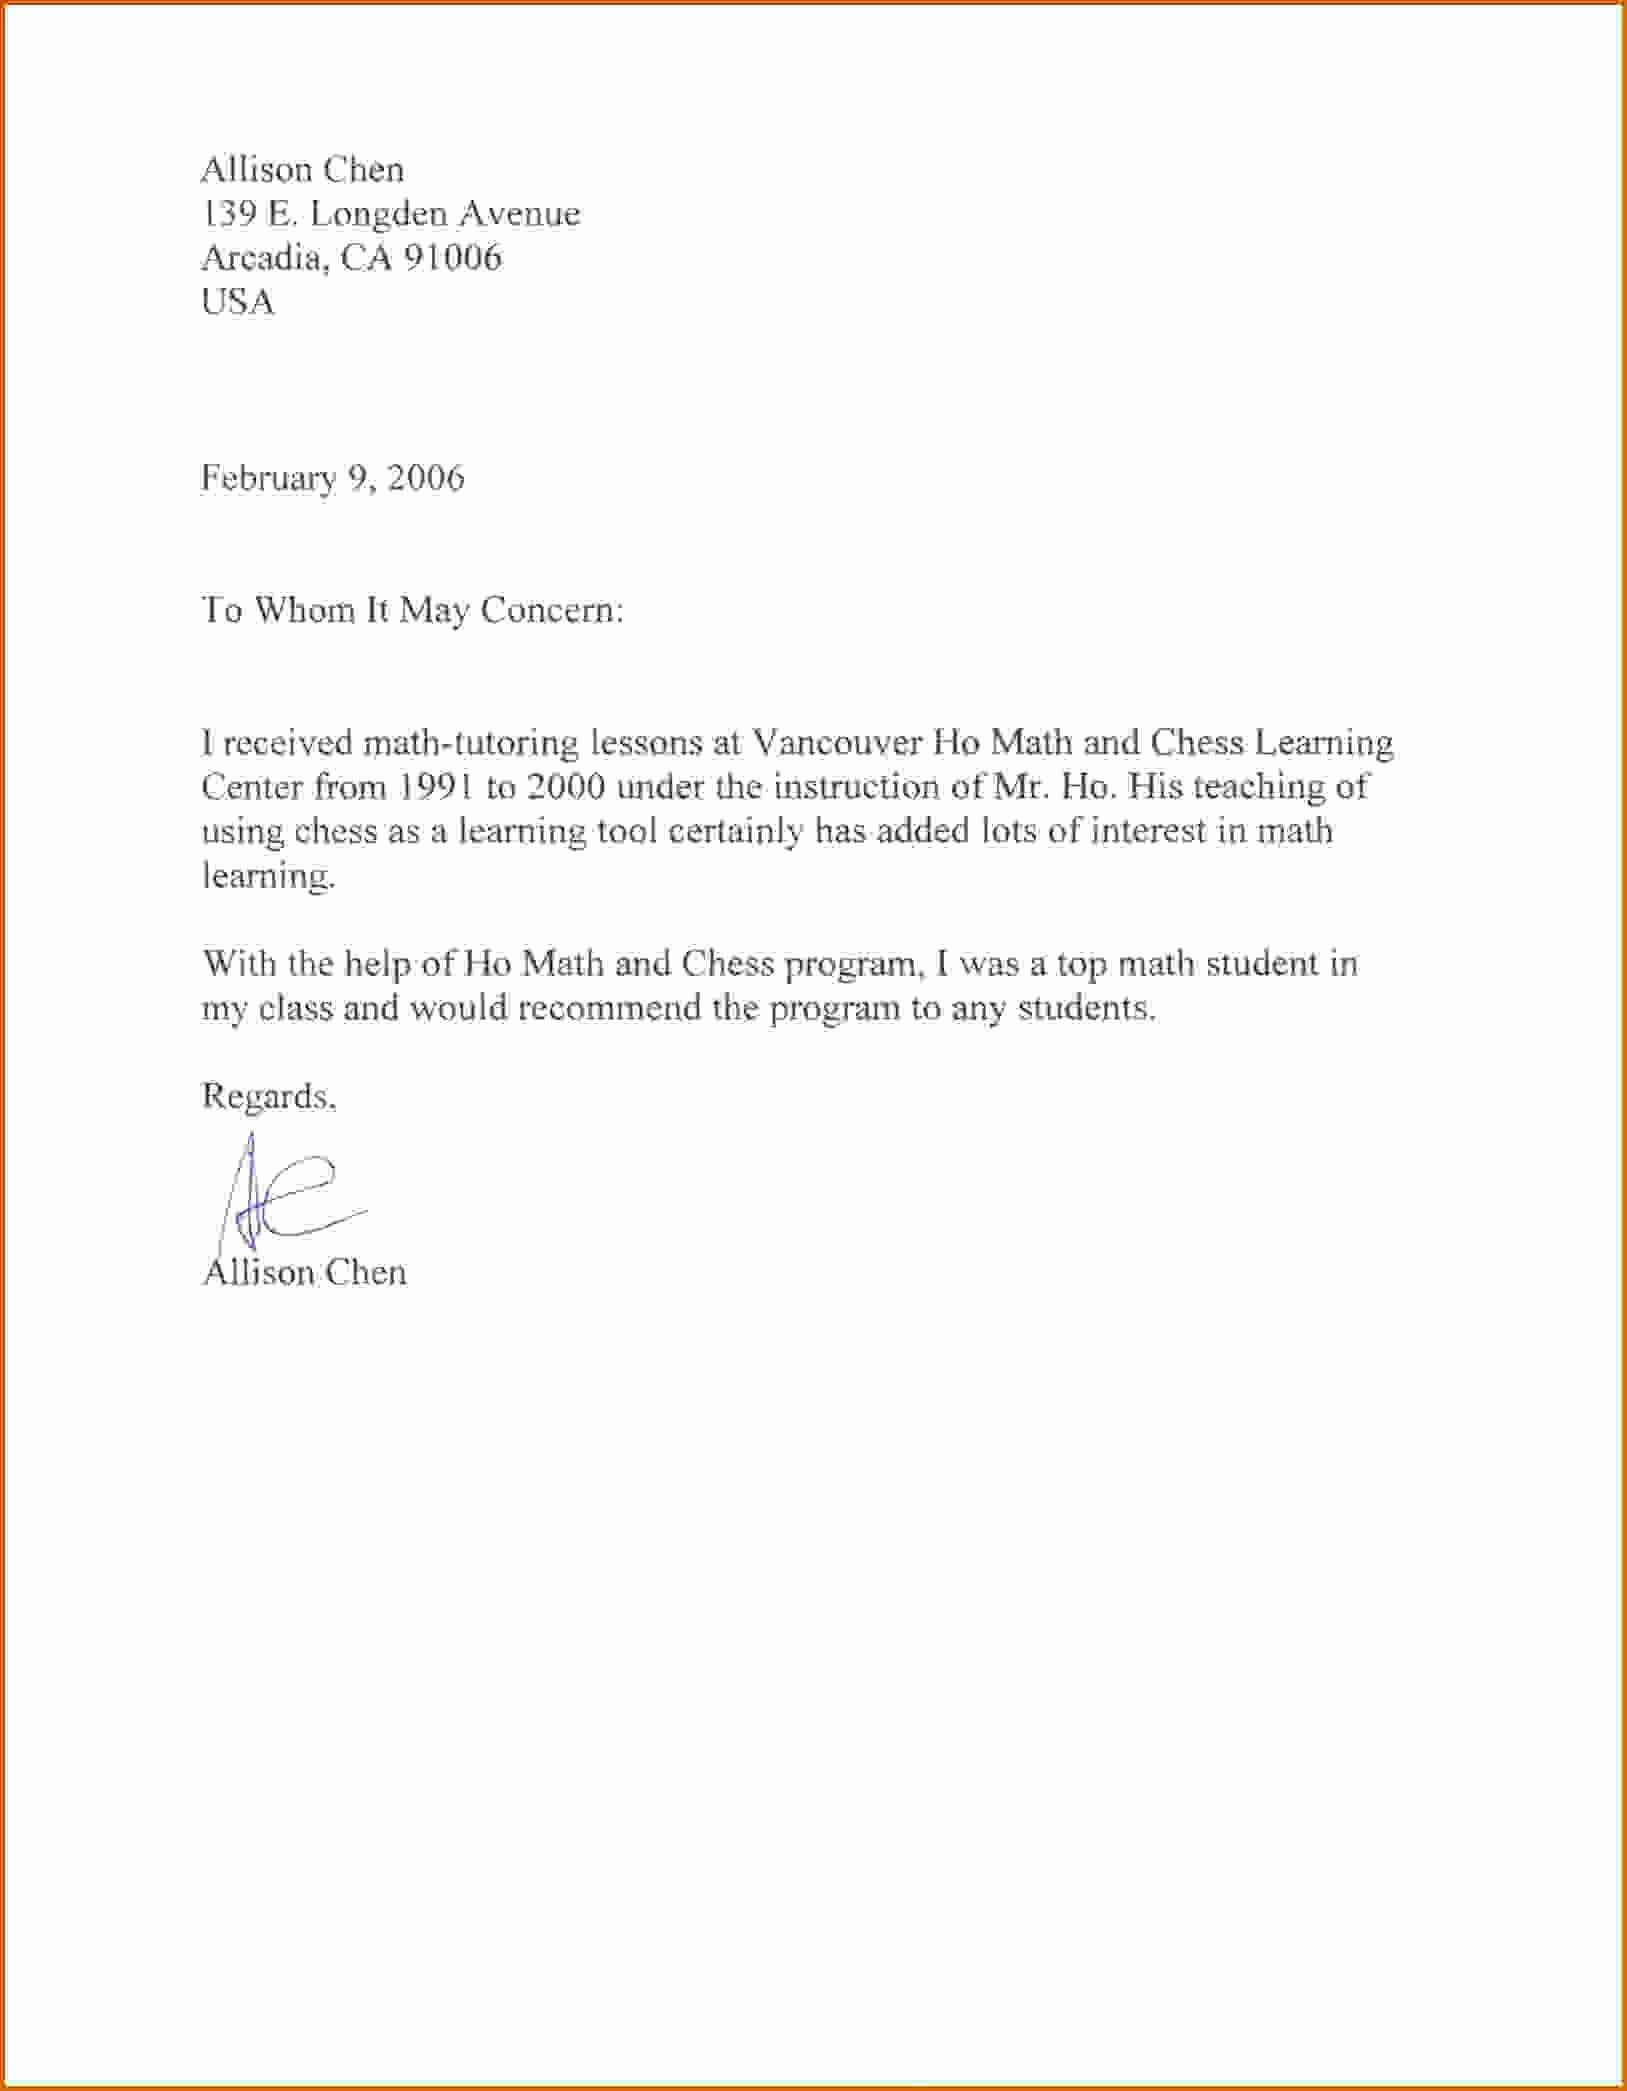 Letter Of Recommendation Template Student Unique 8 Sample Re Mendation Letter for Student